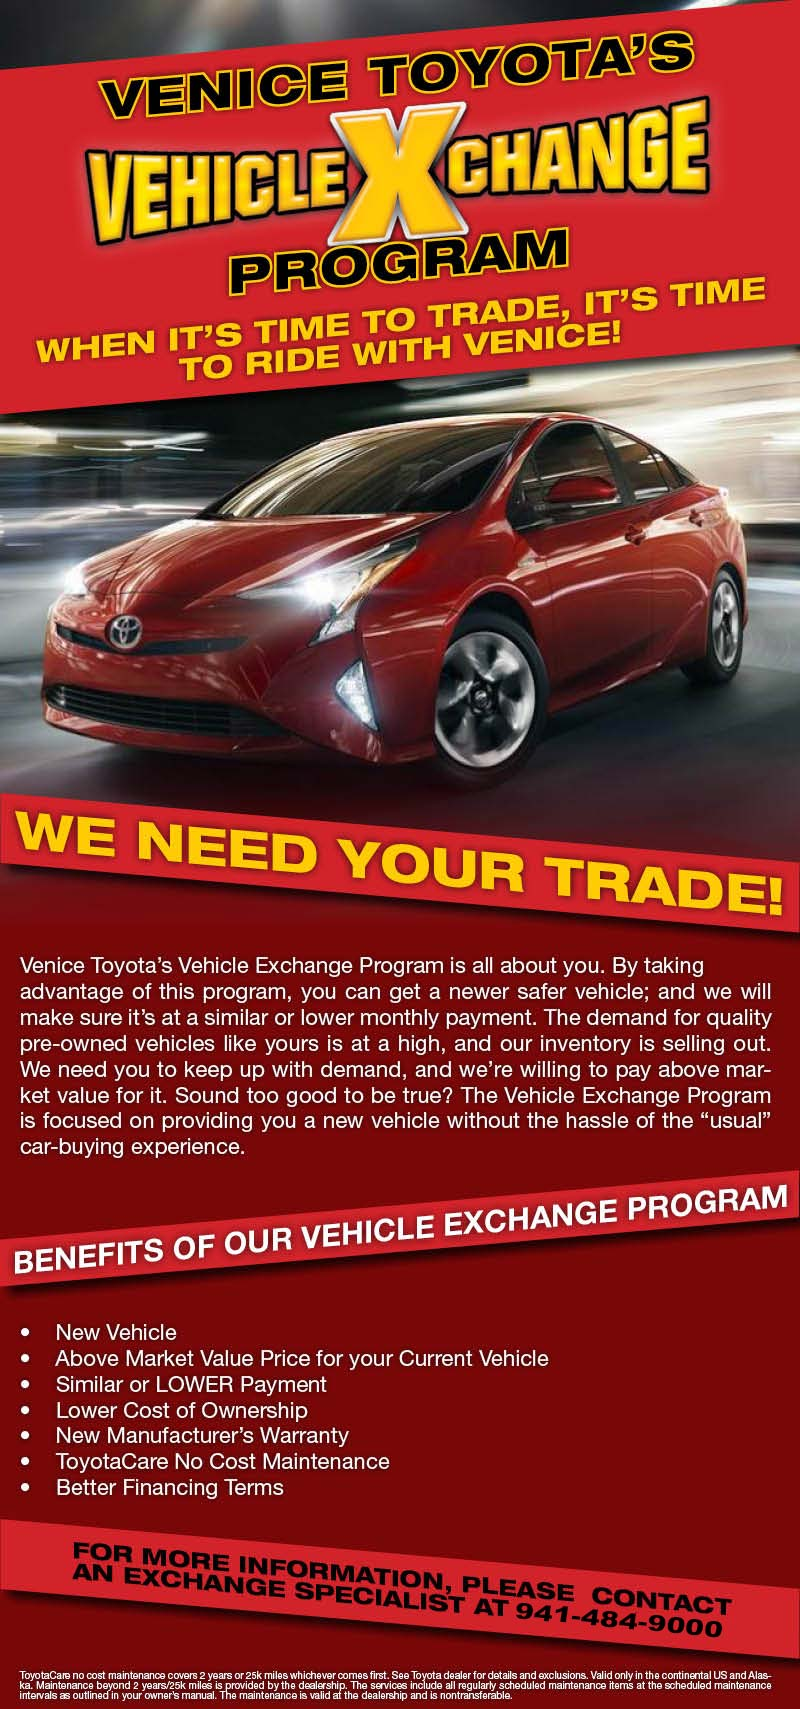 Venice Vehicle Exchange Program